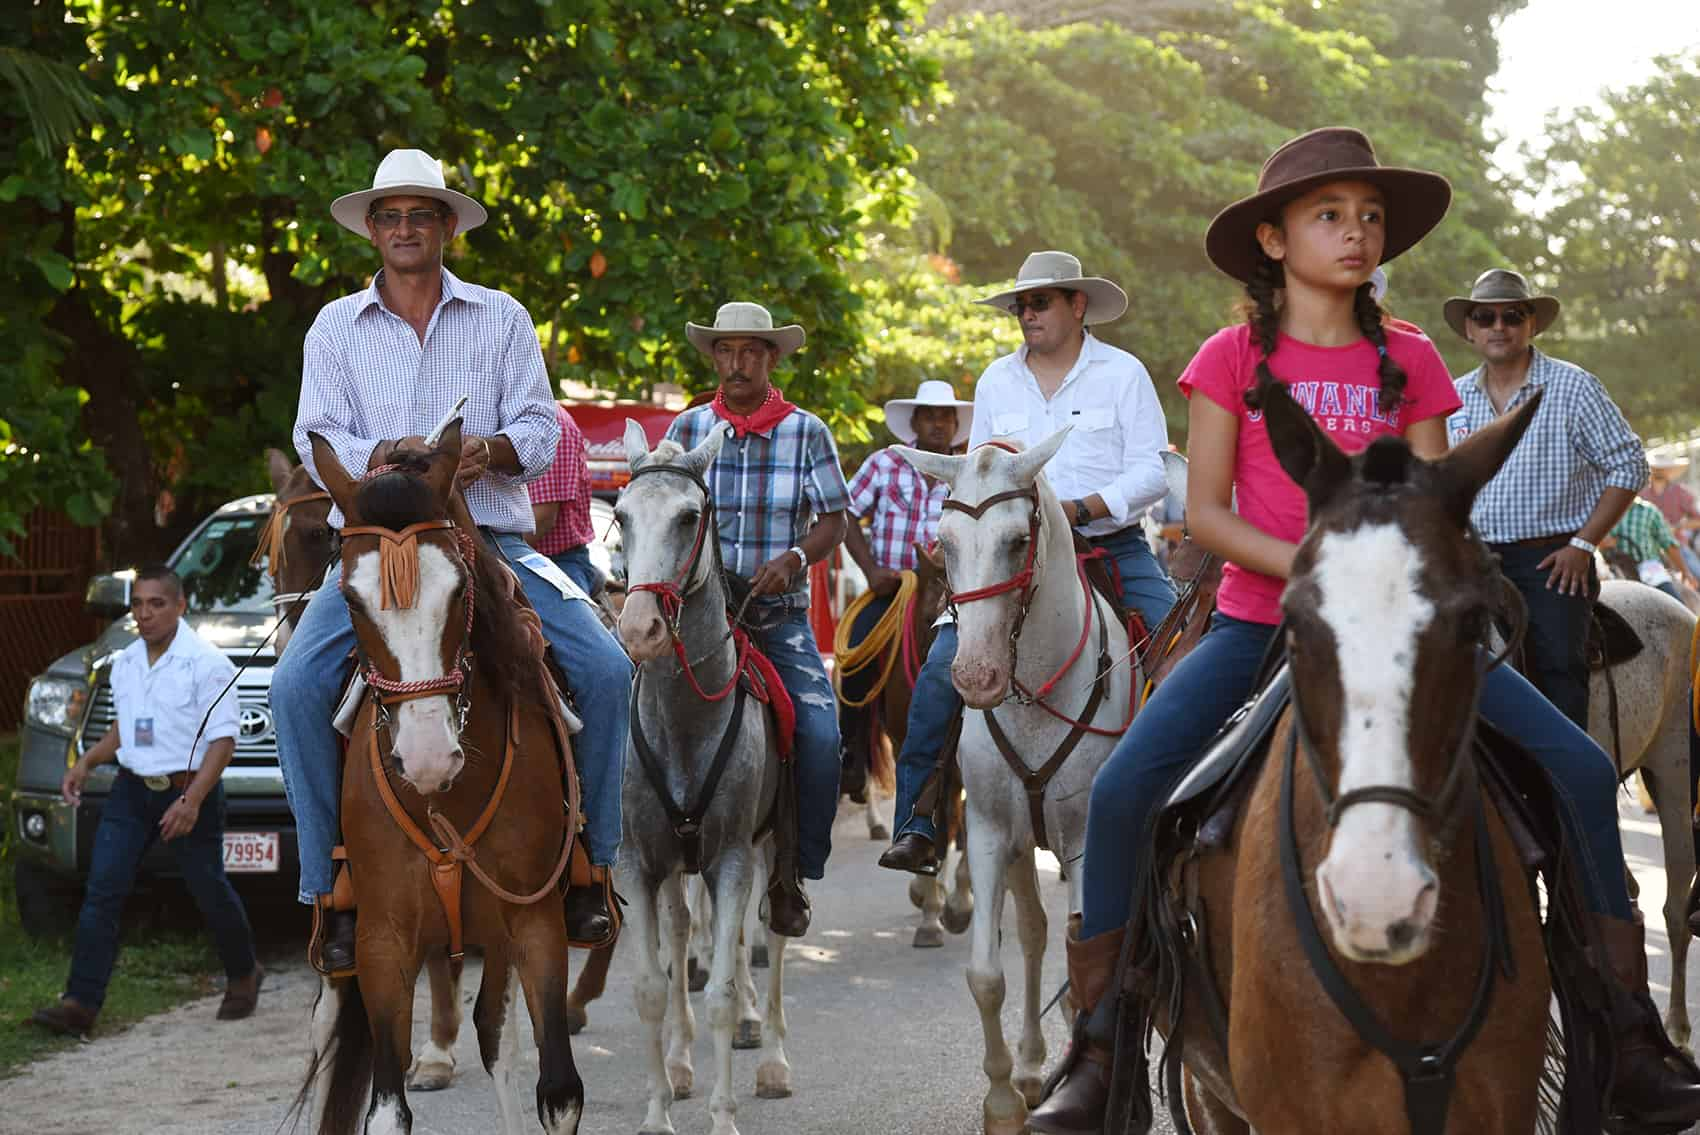 The traditional tope, or horse parade, started late on Saturday and eventually passed through the city of Nicoya.